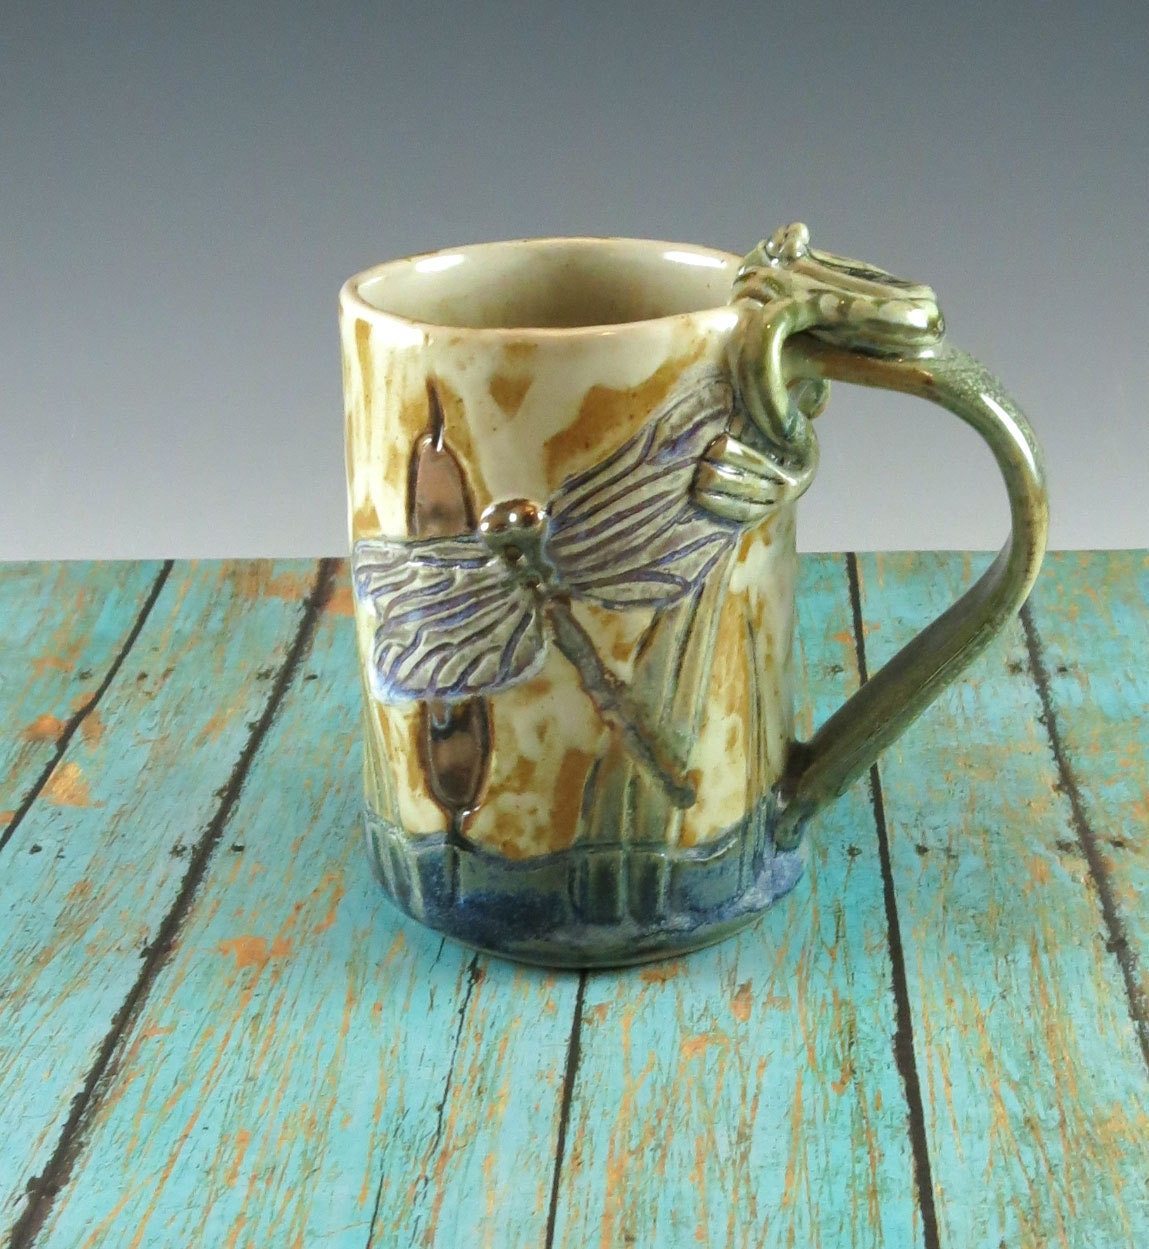 Cattails Pottery Mug Handmade Ceramic Coffee Cup By